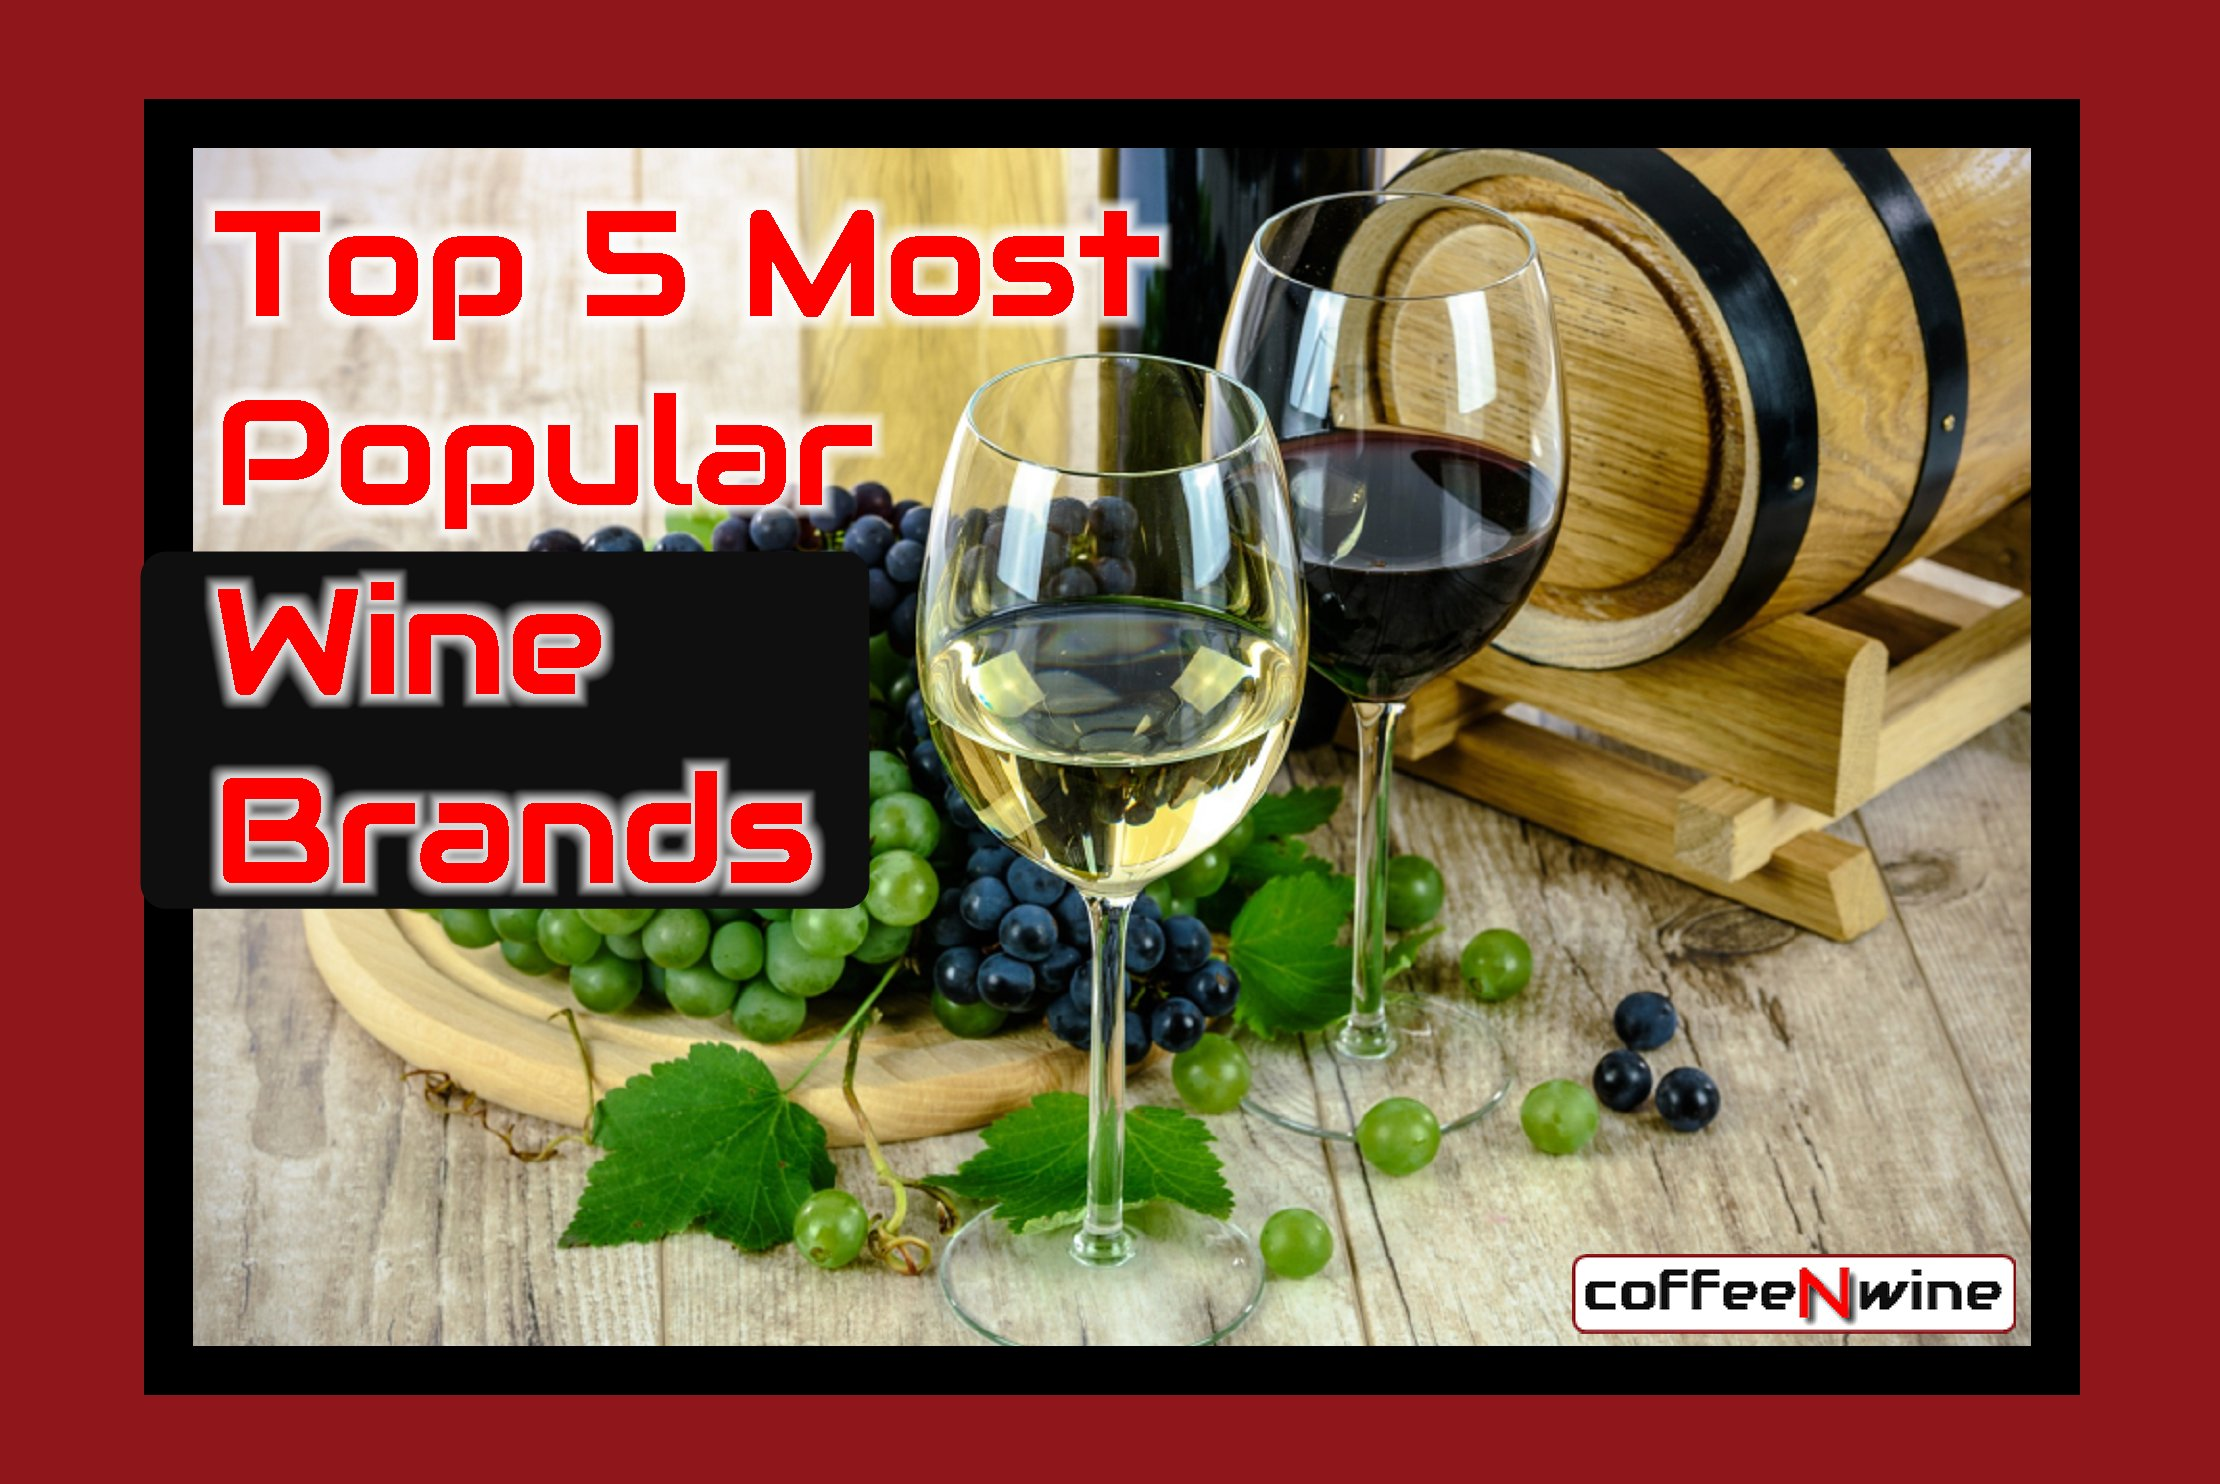 Top 5 Most Popular Wine Brands